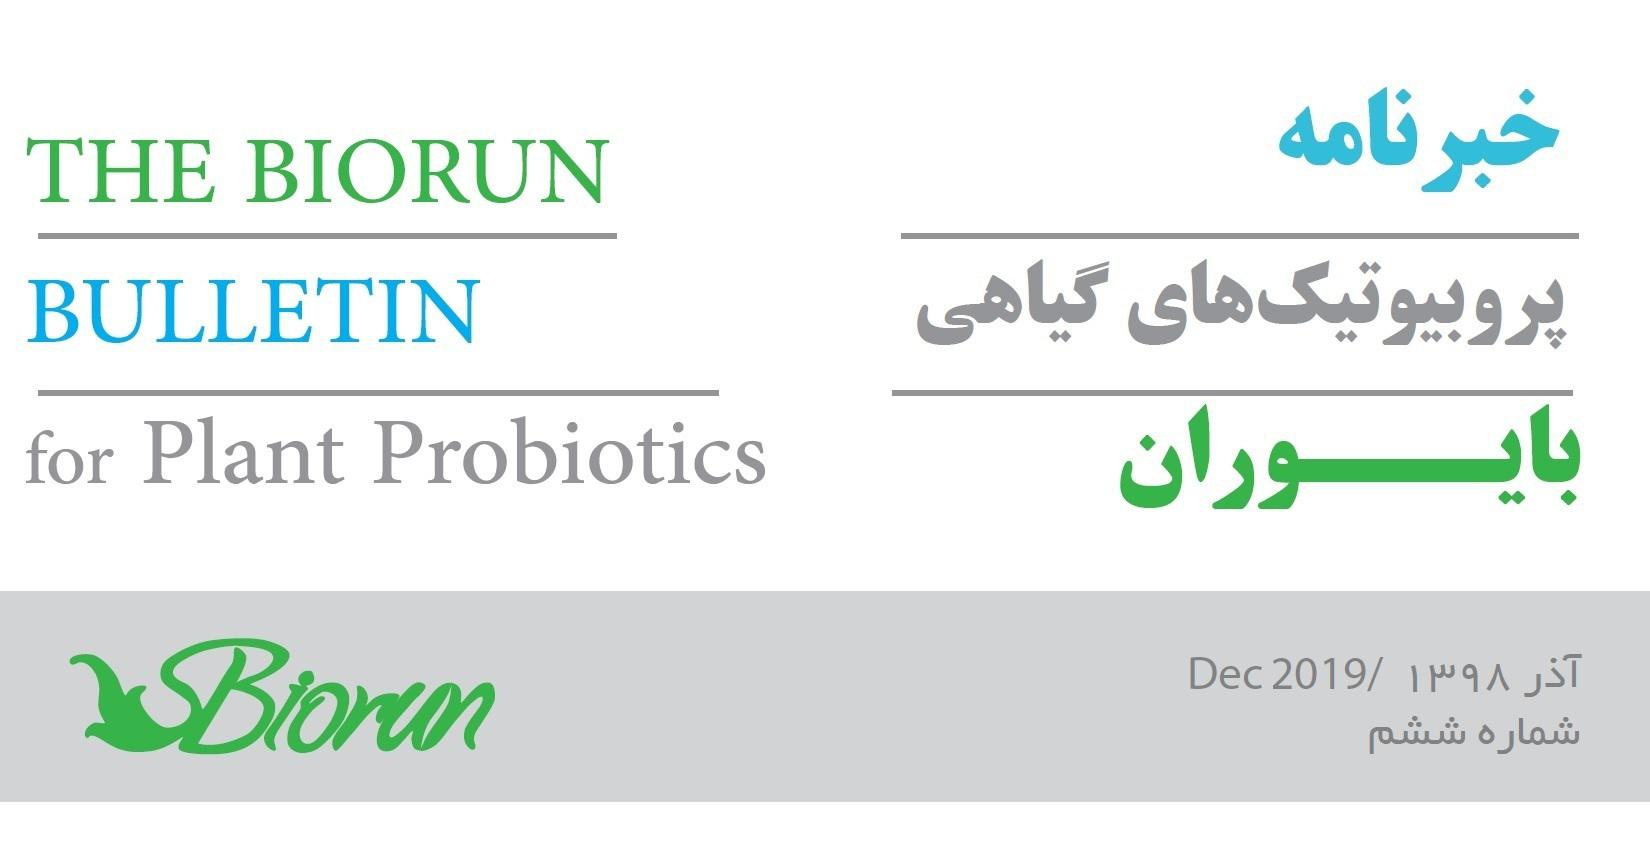 The Biorun Bulletin for Plant Probiotics, No. 6, December 2019